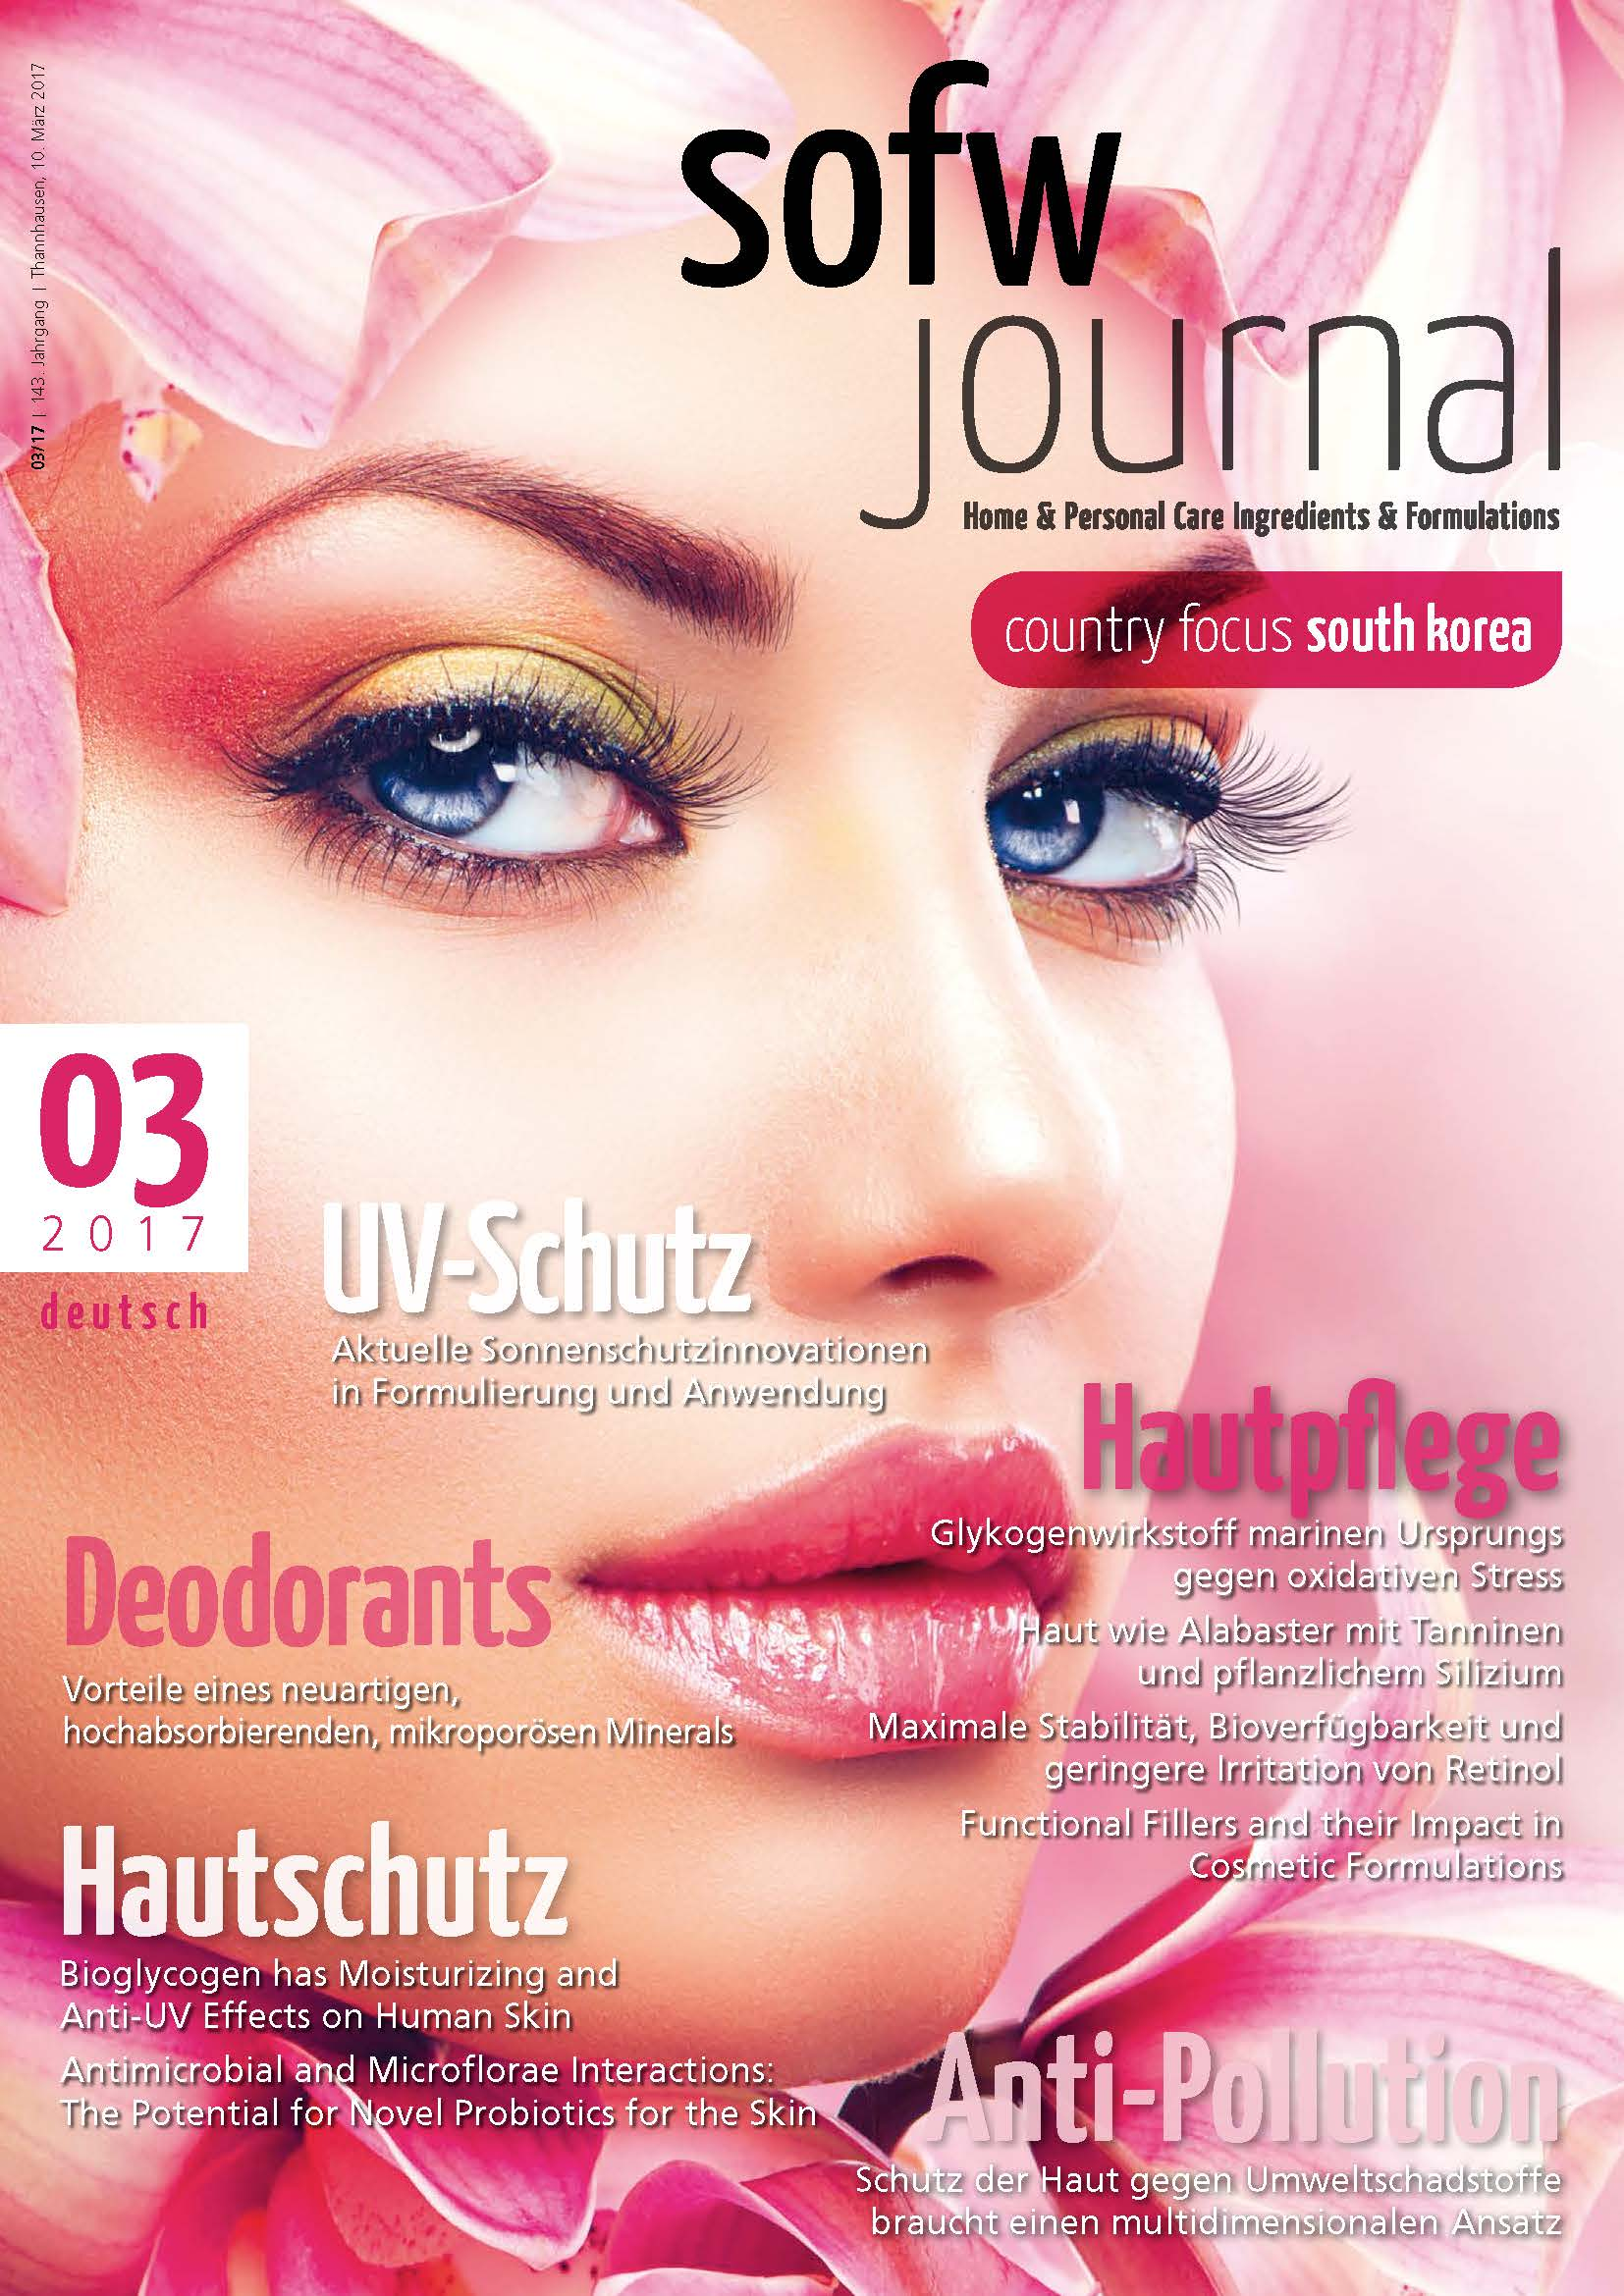 sofwjournal_de_2017_03_cover_1534973193